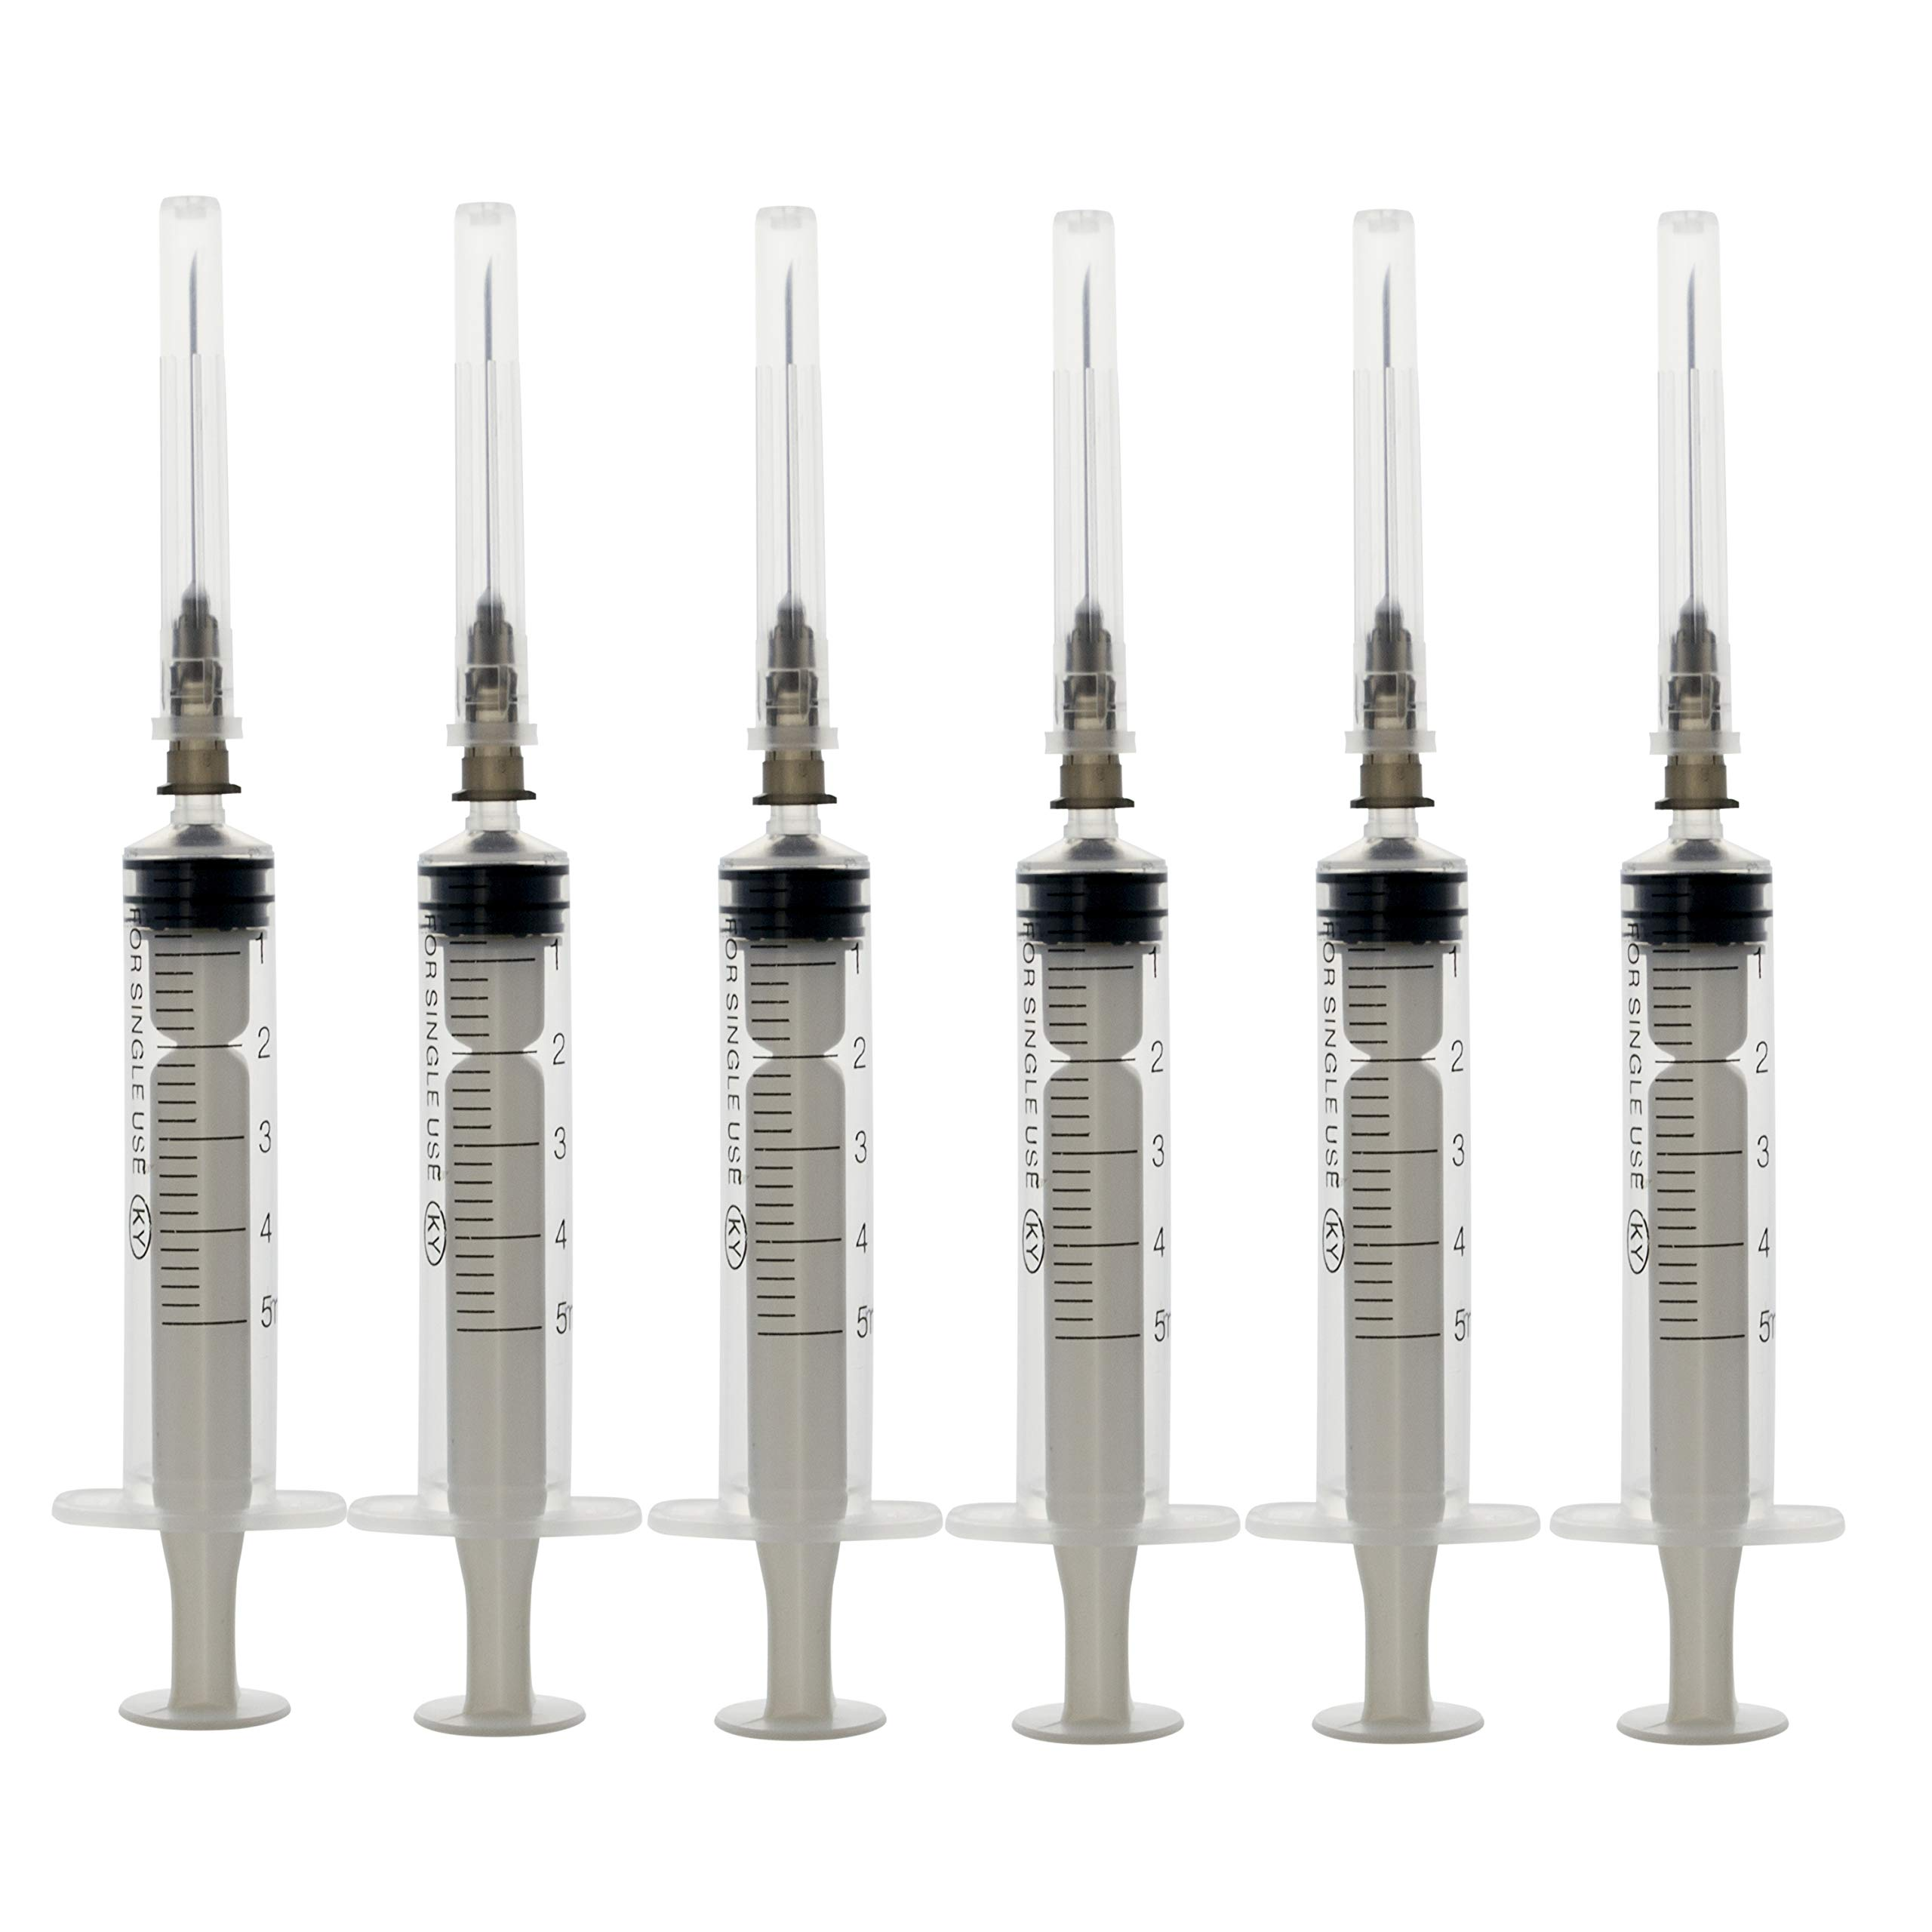 50Pack-5ml/cc 23Ga Veterinary Or Industrial Disposable Sterile Syringe Needle,Plastic Syringe,Glue Syringe,Single Sterile Individually Packaged (50Pack-5ml) by SHAOTONG